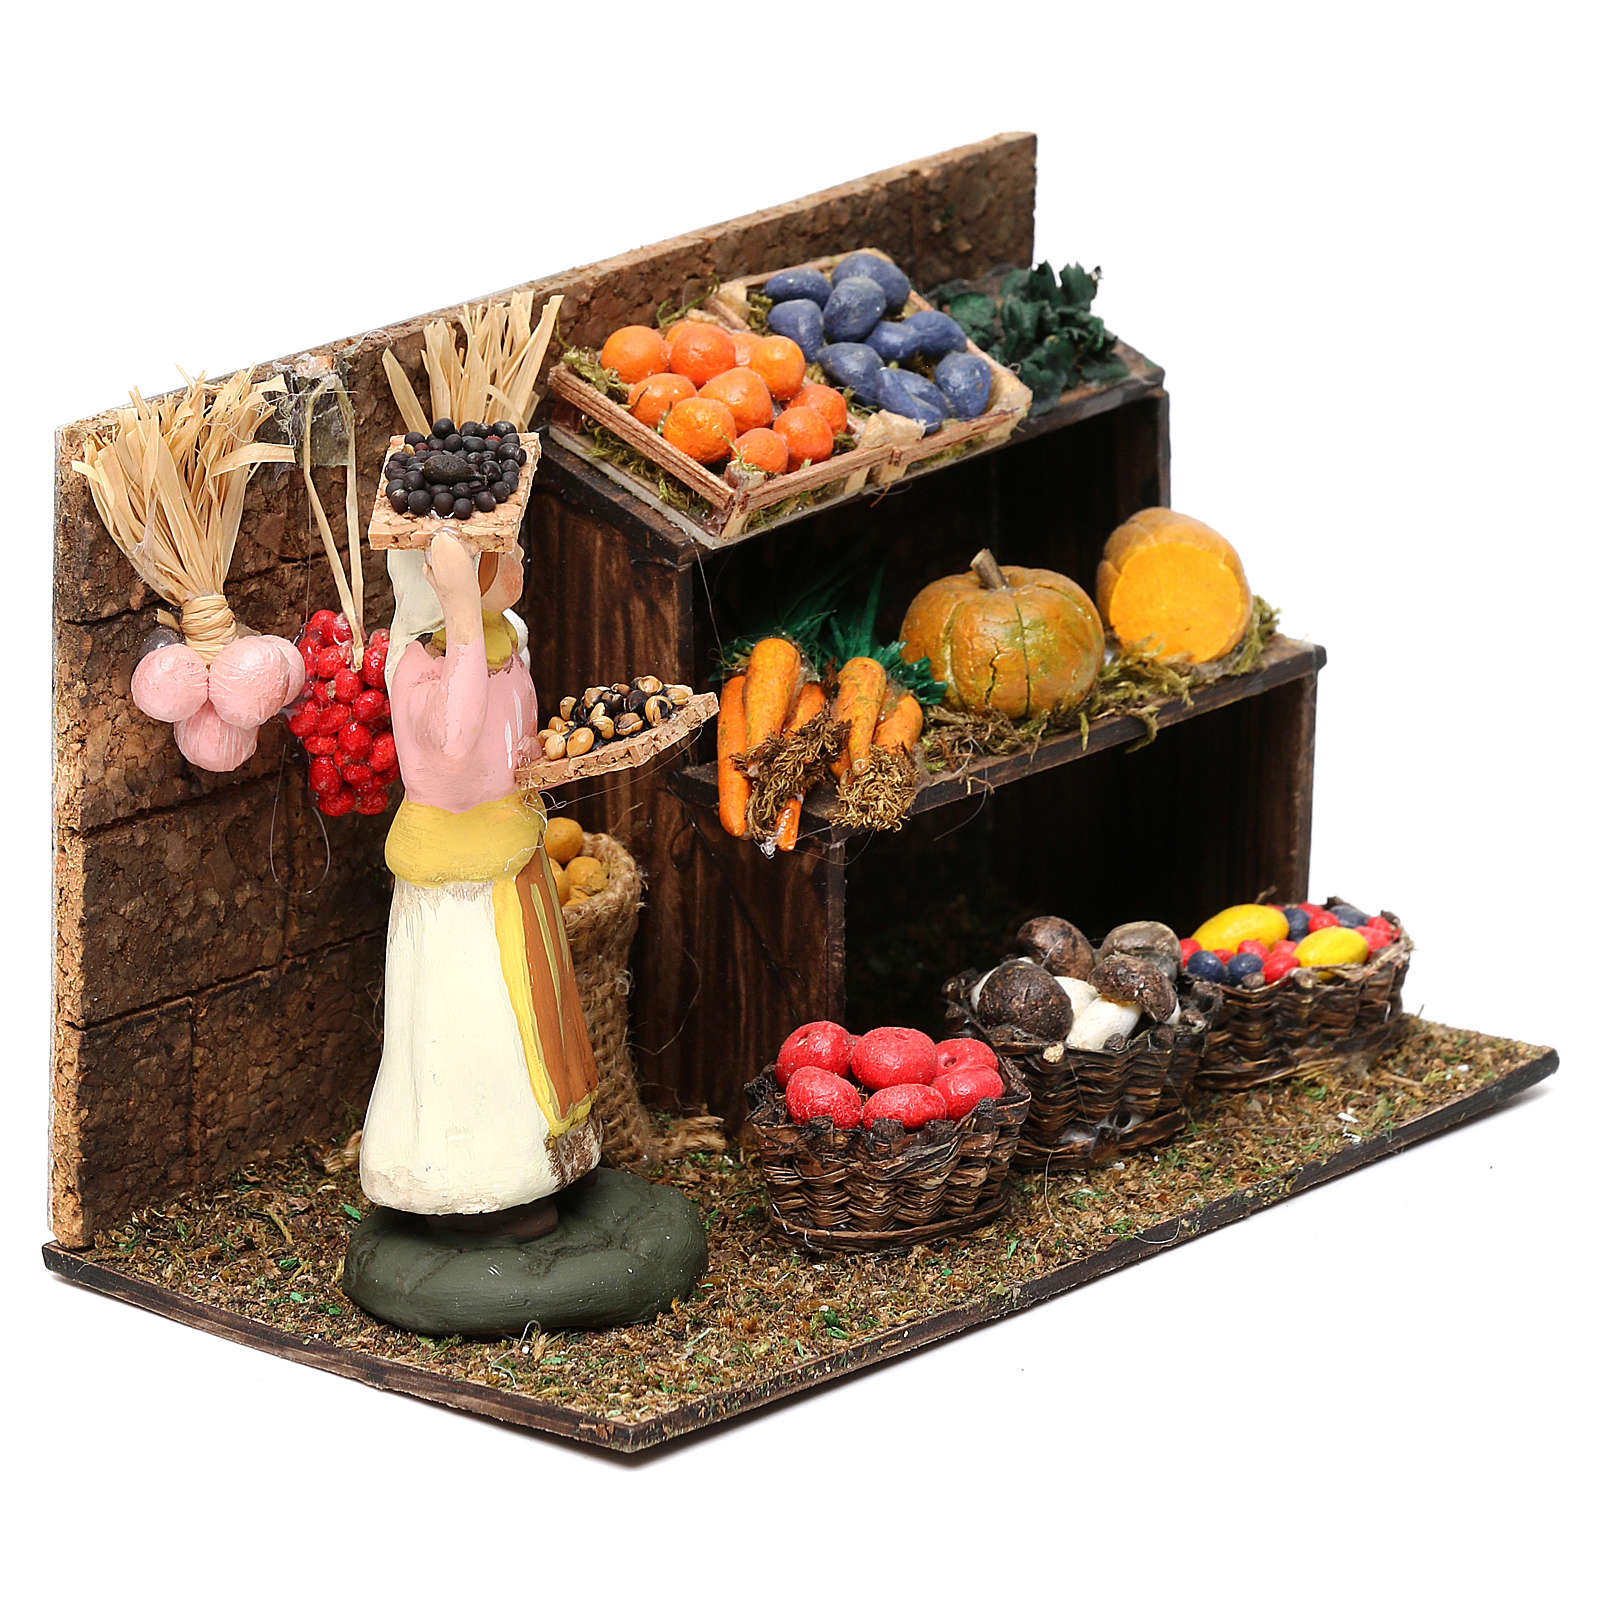 Greengrocer with fruit and vegetable counter for Neapolitan Nativity scene 8 cm 4